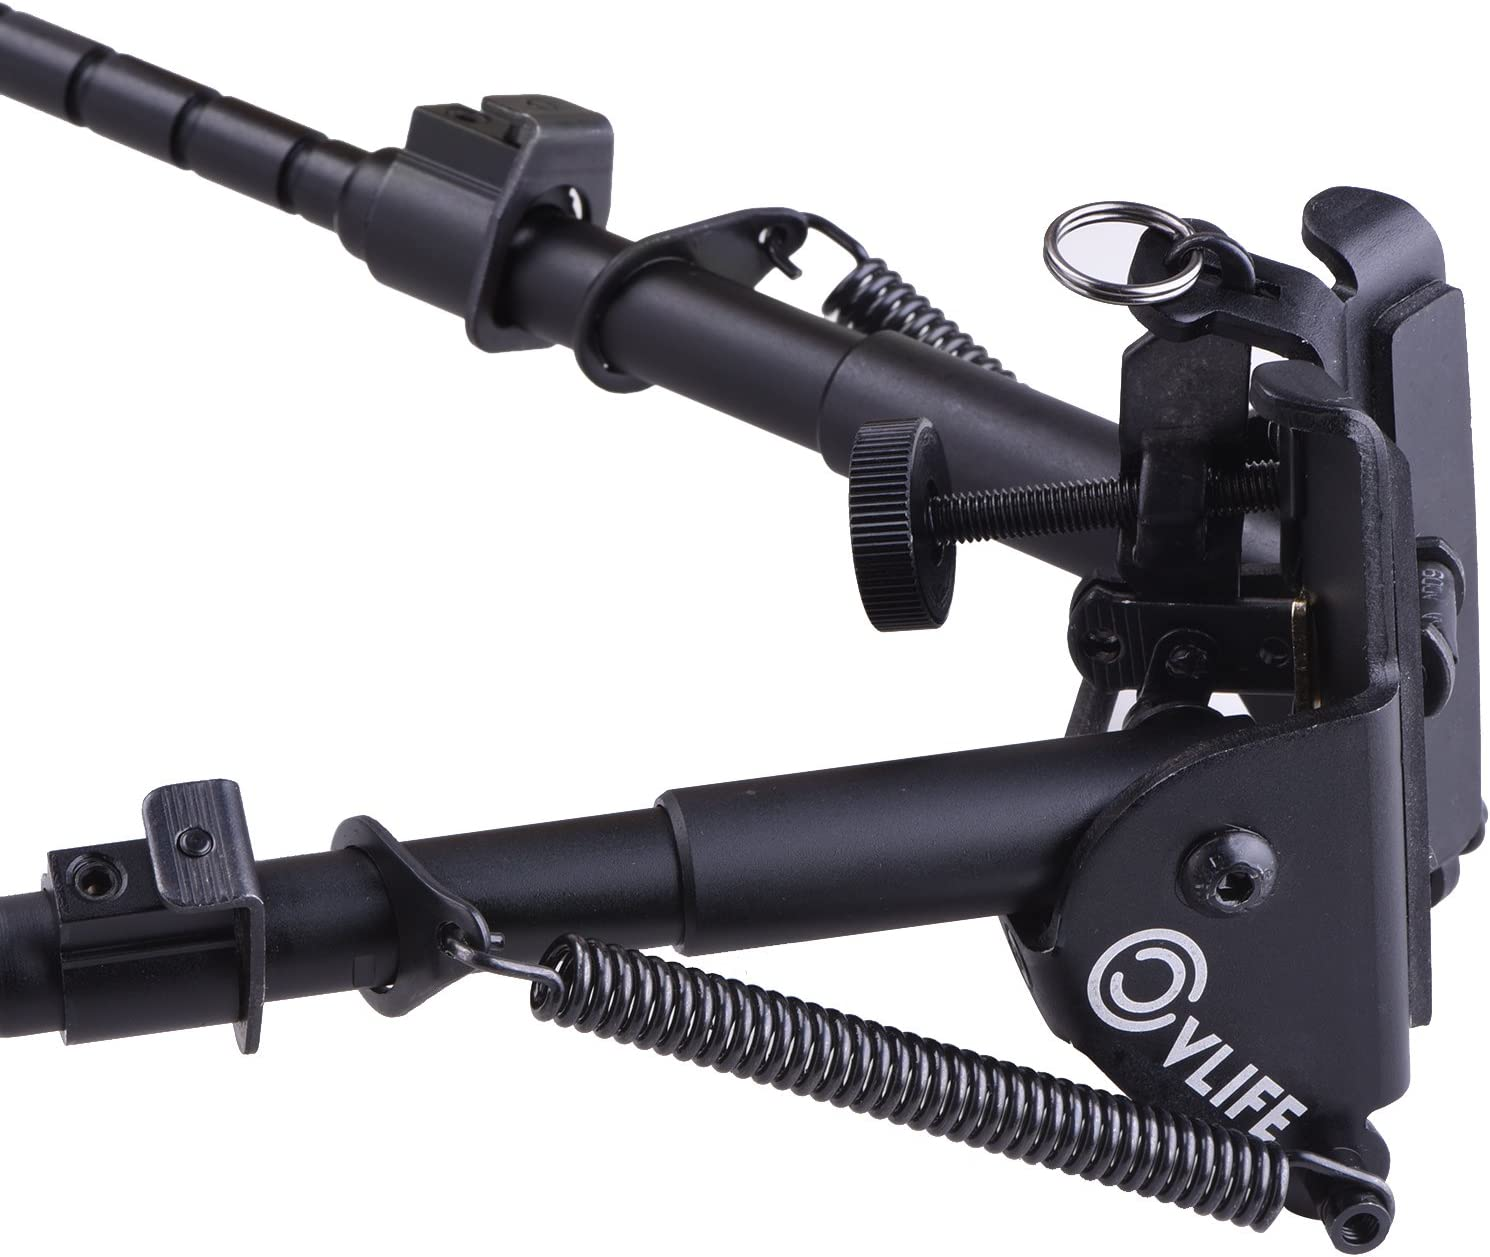 CVLIFE 6-9 Inches Tactical Rifle Bipod Adjustable Spring Return with Adapter : Sports & Outdoors